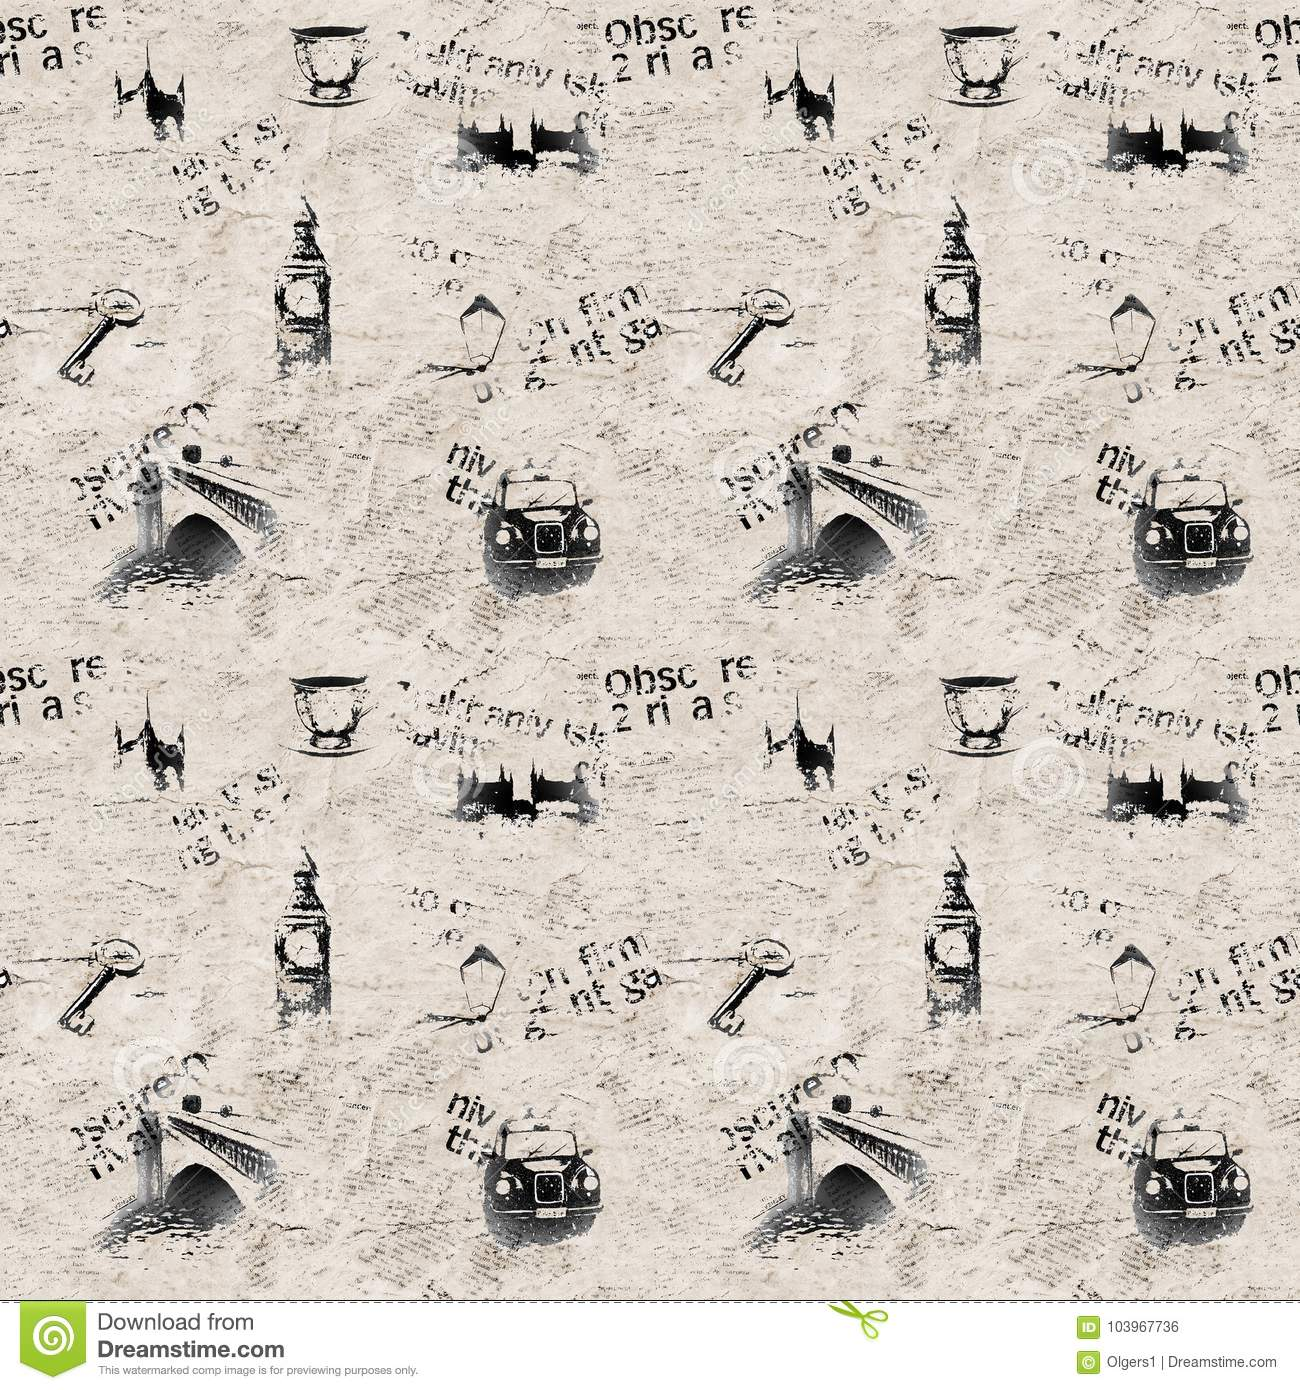 newspaper grunge london background stock illustration - illustration